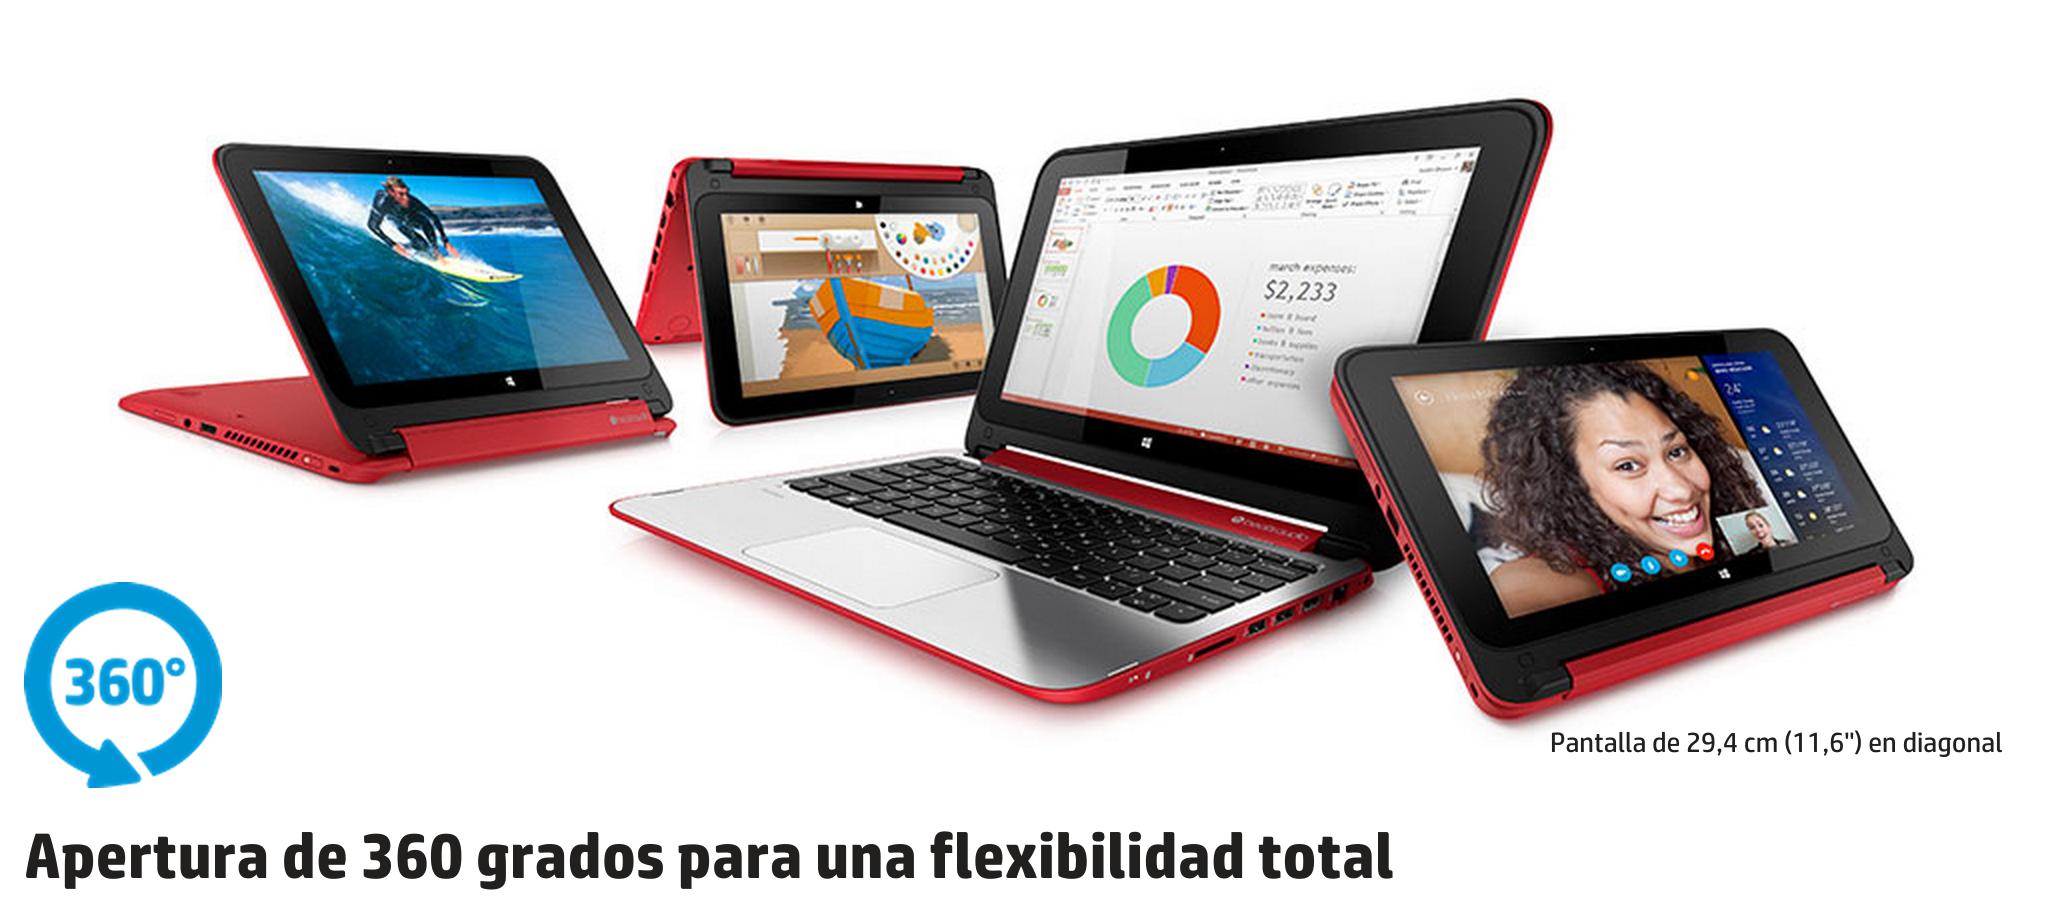 Convertible HP Pavillion x360, nueva colaboración de HP para el proyecto Moving Liquid Galaxy 2, versión Windows Peruse-a-rue #liquidgalaxy